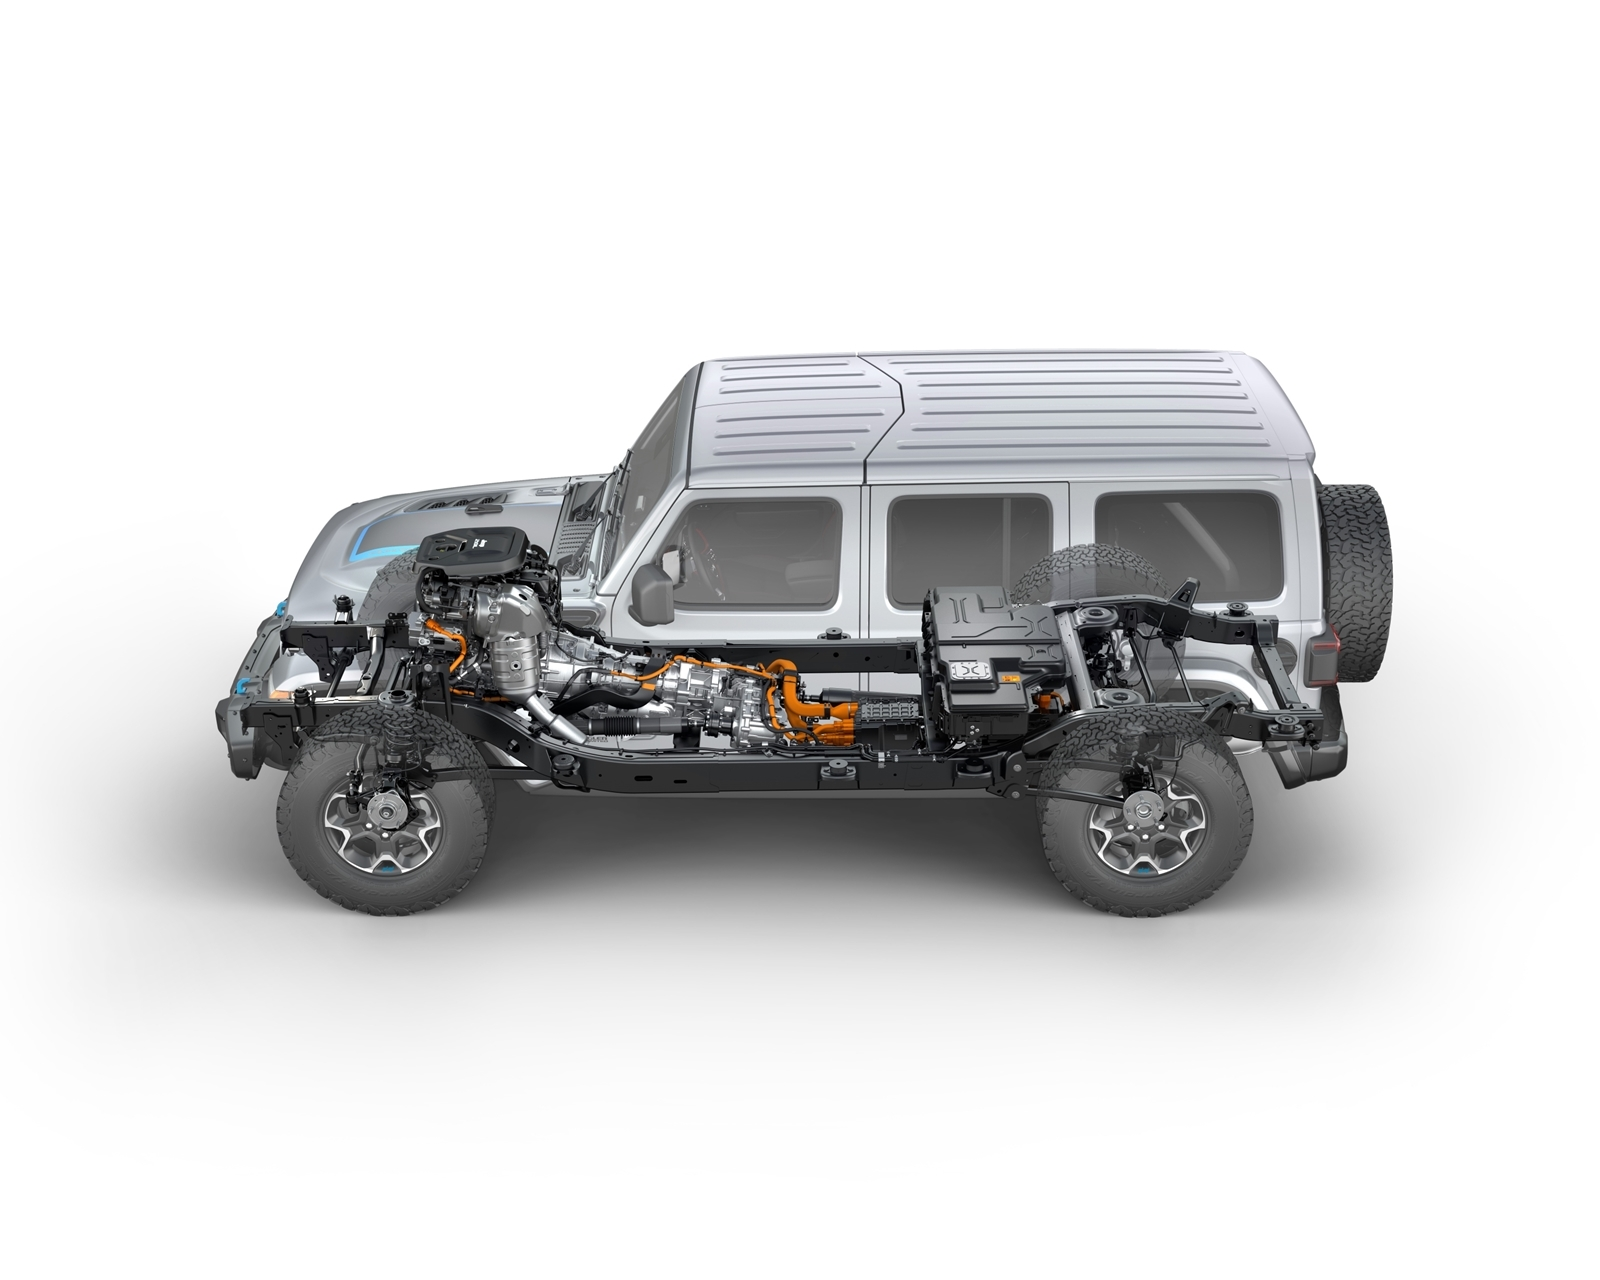 Side View Of The 2021 Jeep® Wrangler Rubicon 4xe Hybrid Electric